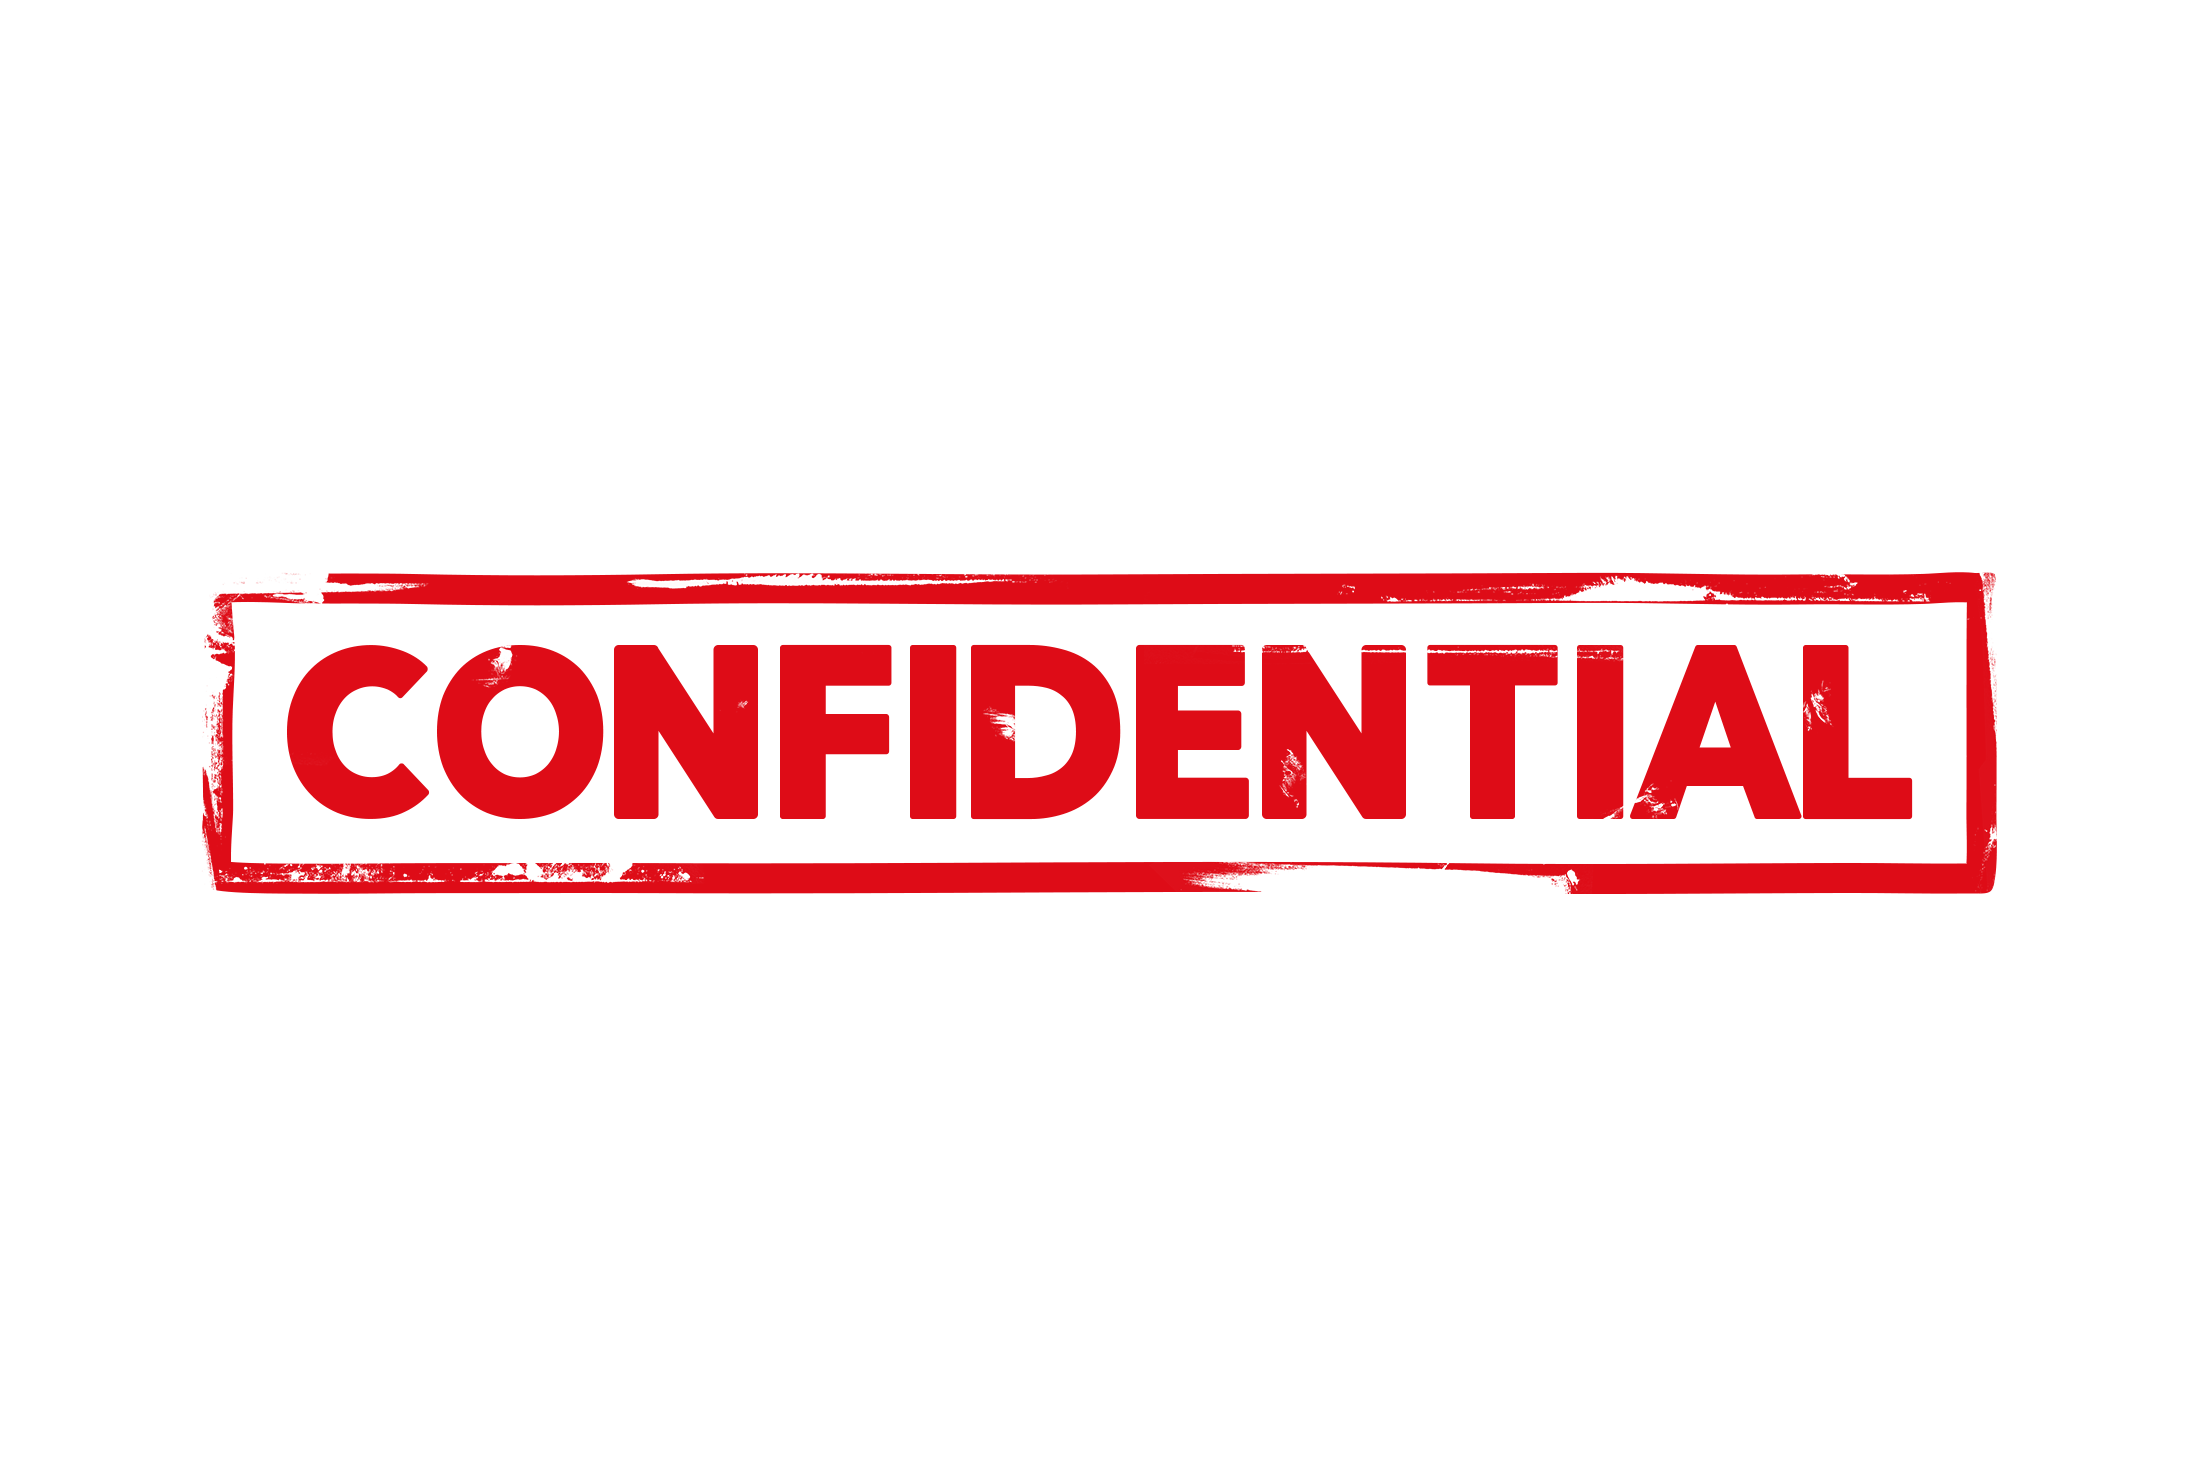 Confidential stamp PSD